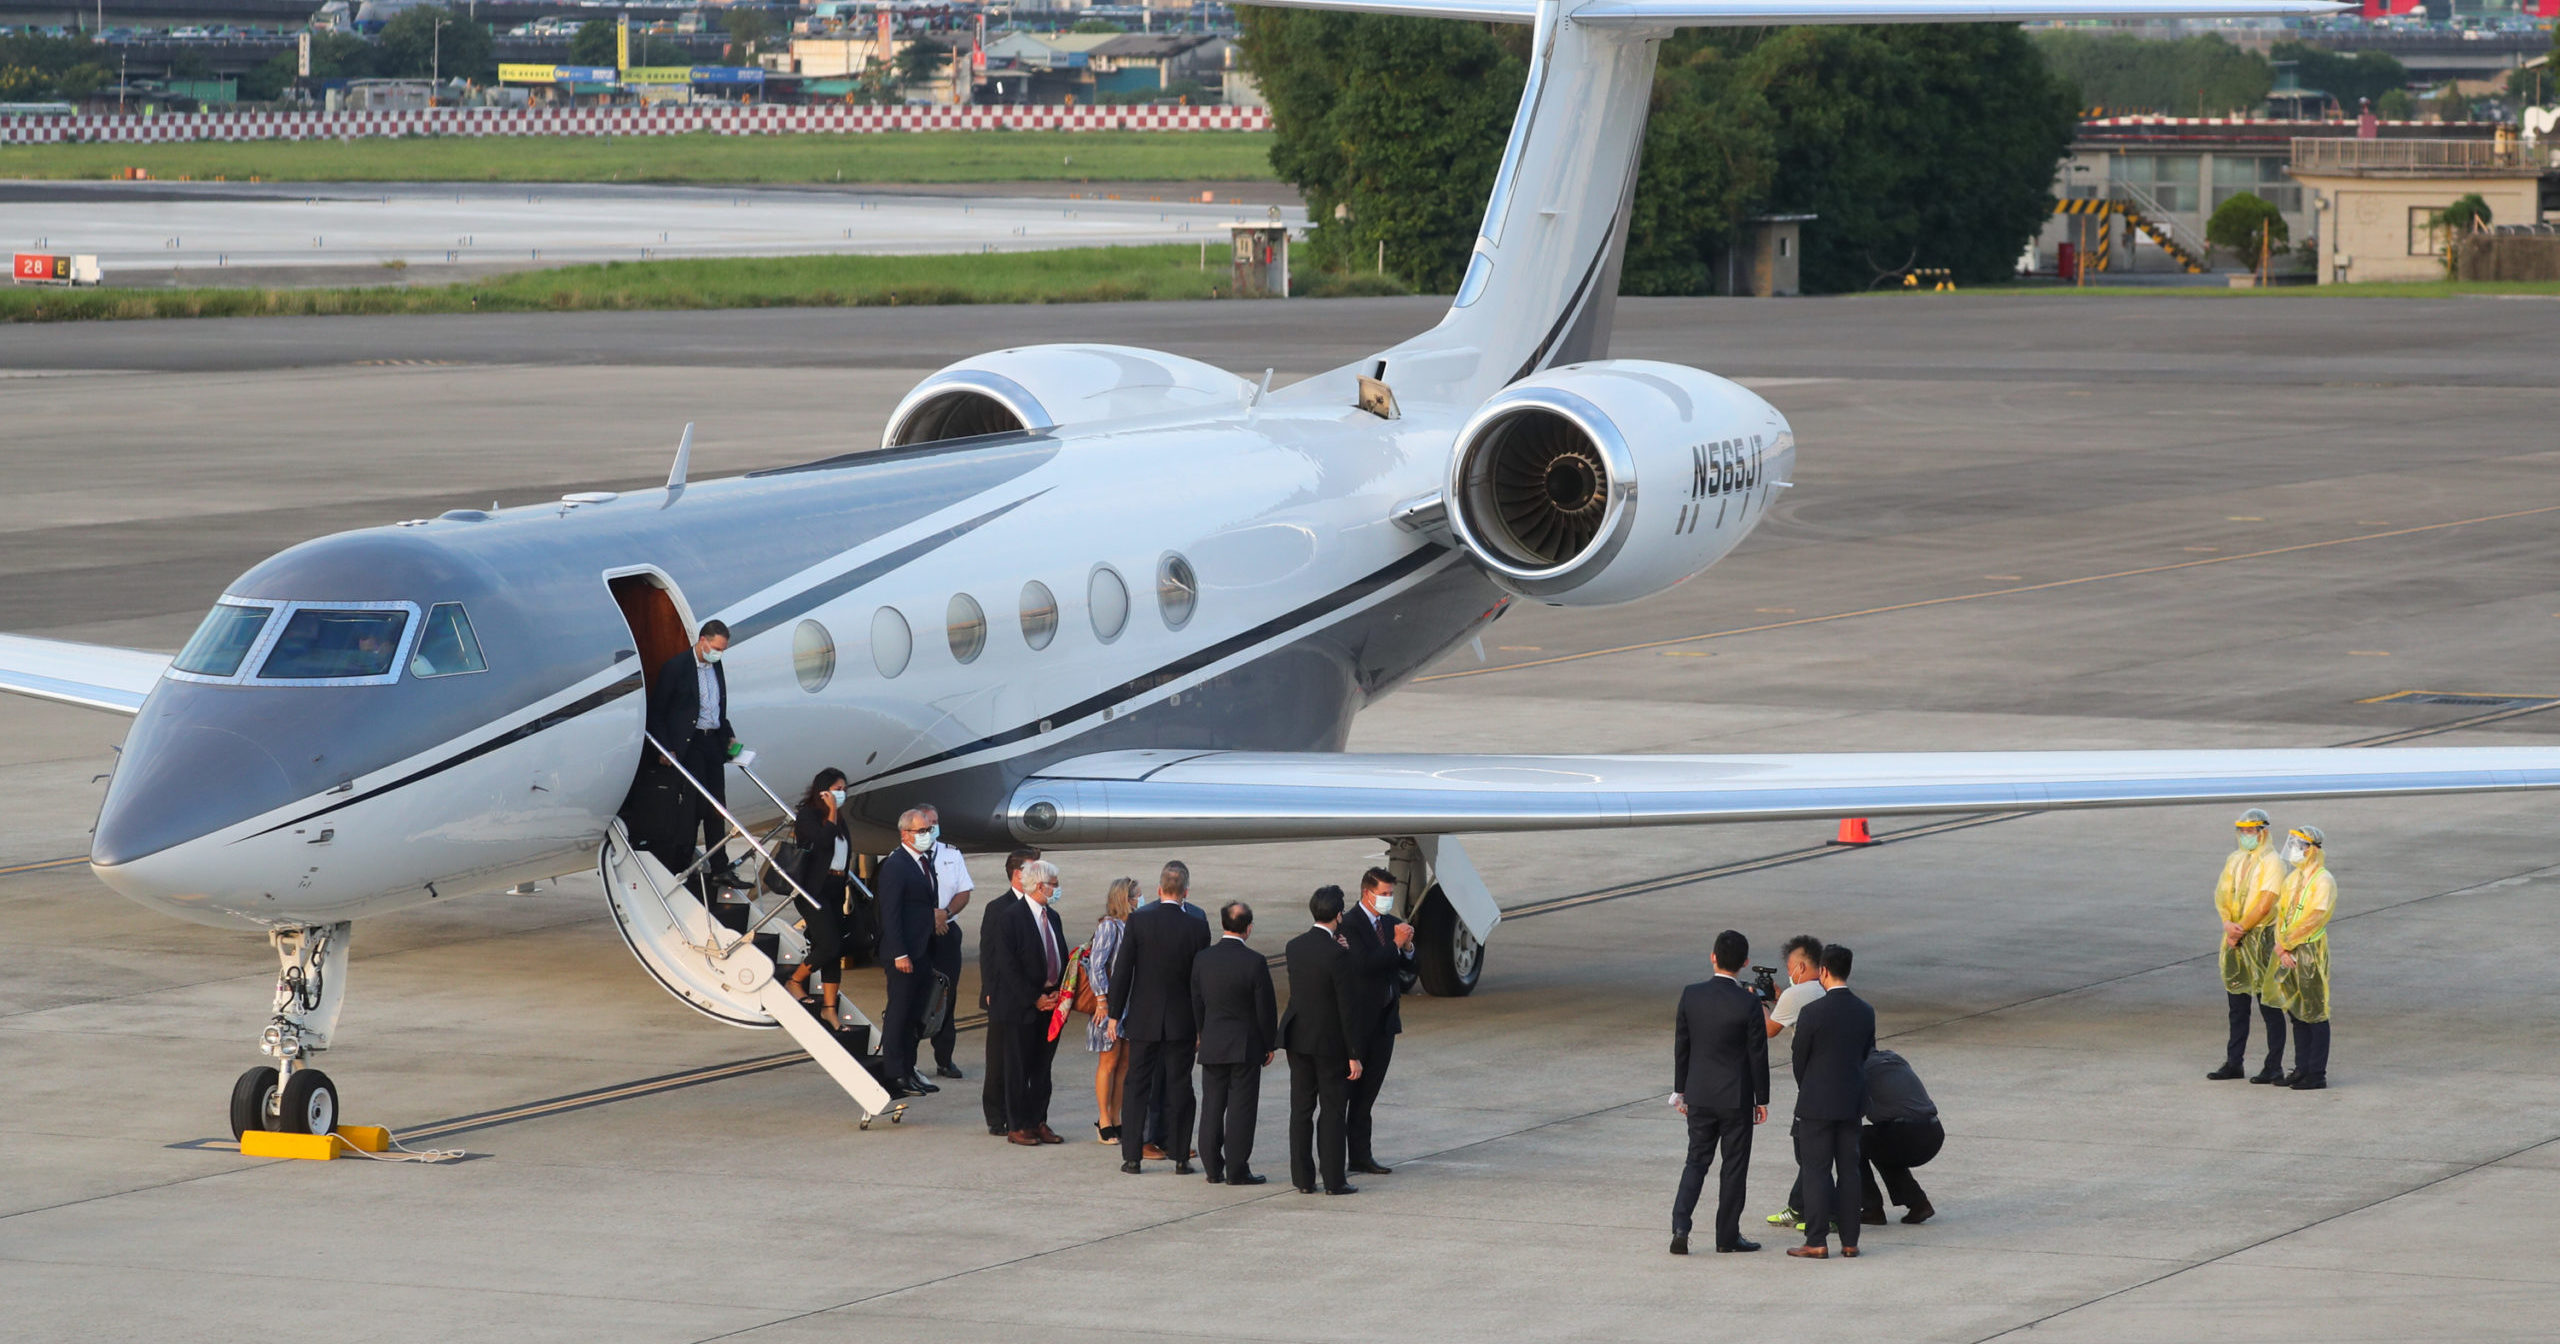 US Under Secretary of State Keith Krach disembarks from a plane upon arrival in Taipei, Taiwan, on Sept. 17, 2020. Krach is in Taiwan for the second visit by a high-level American official in two months, prompting a military threat from China.